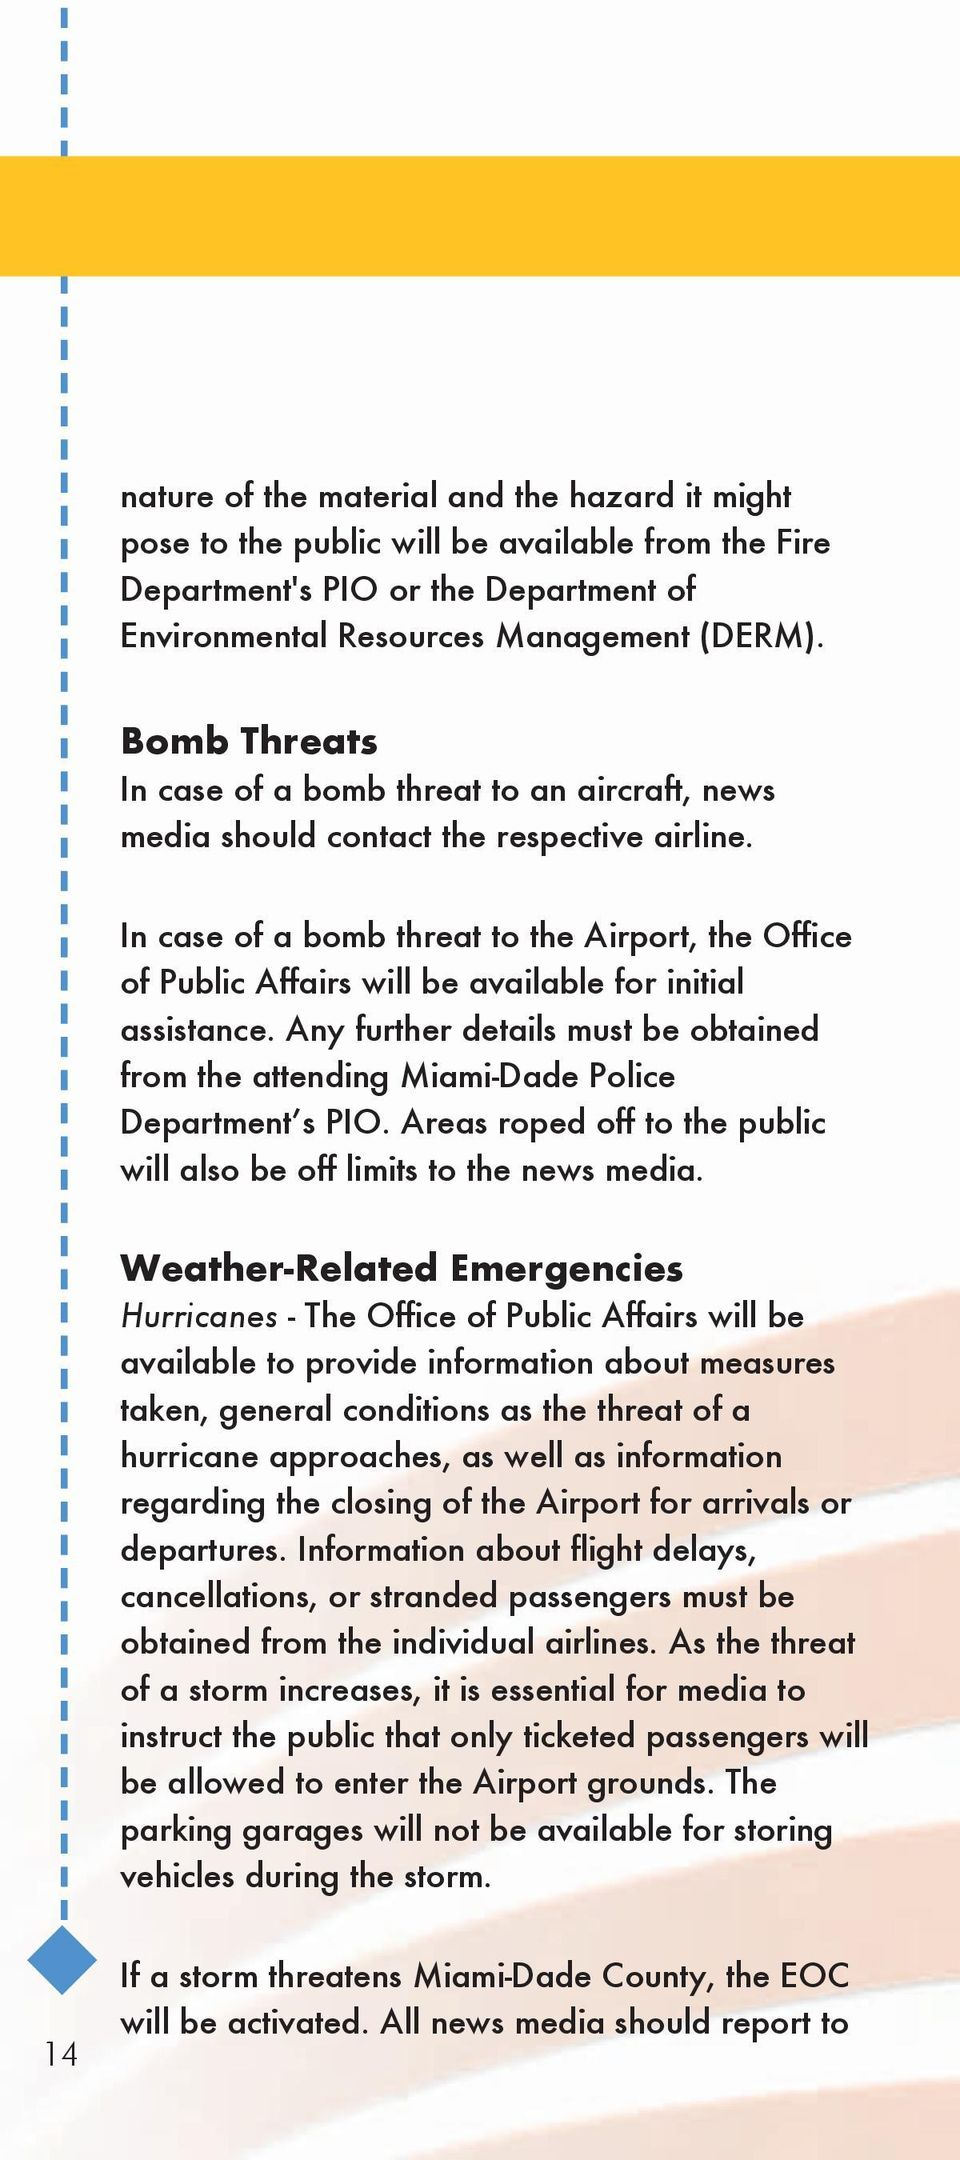 In case of a bomb threat to the Airport, the Office of Public Affairs will be available for initial assistance.